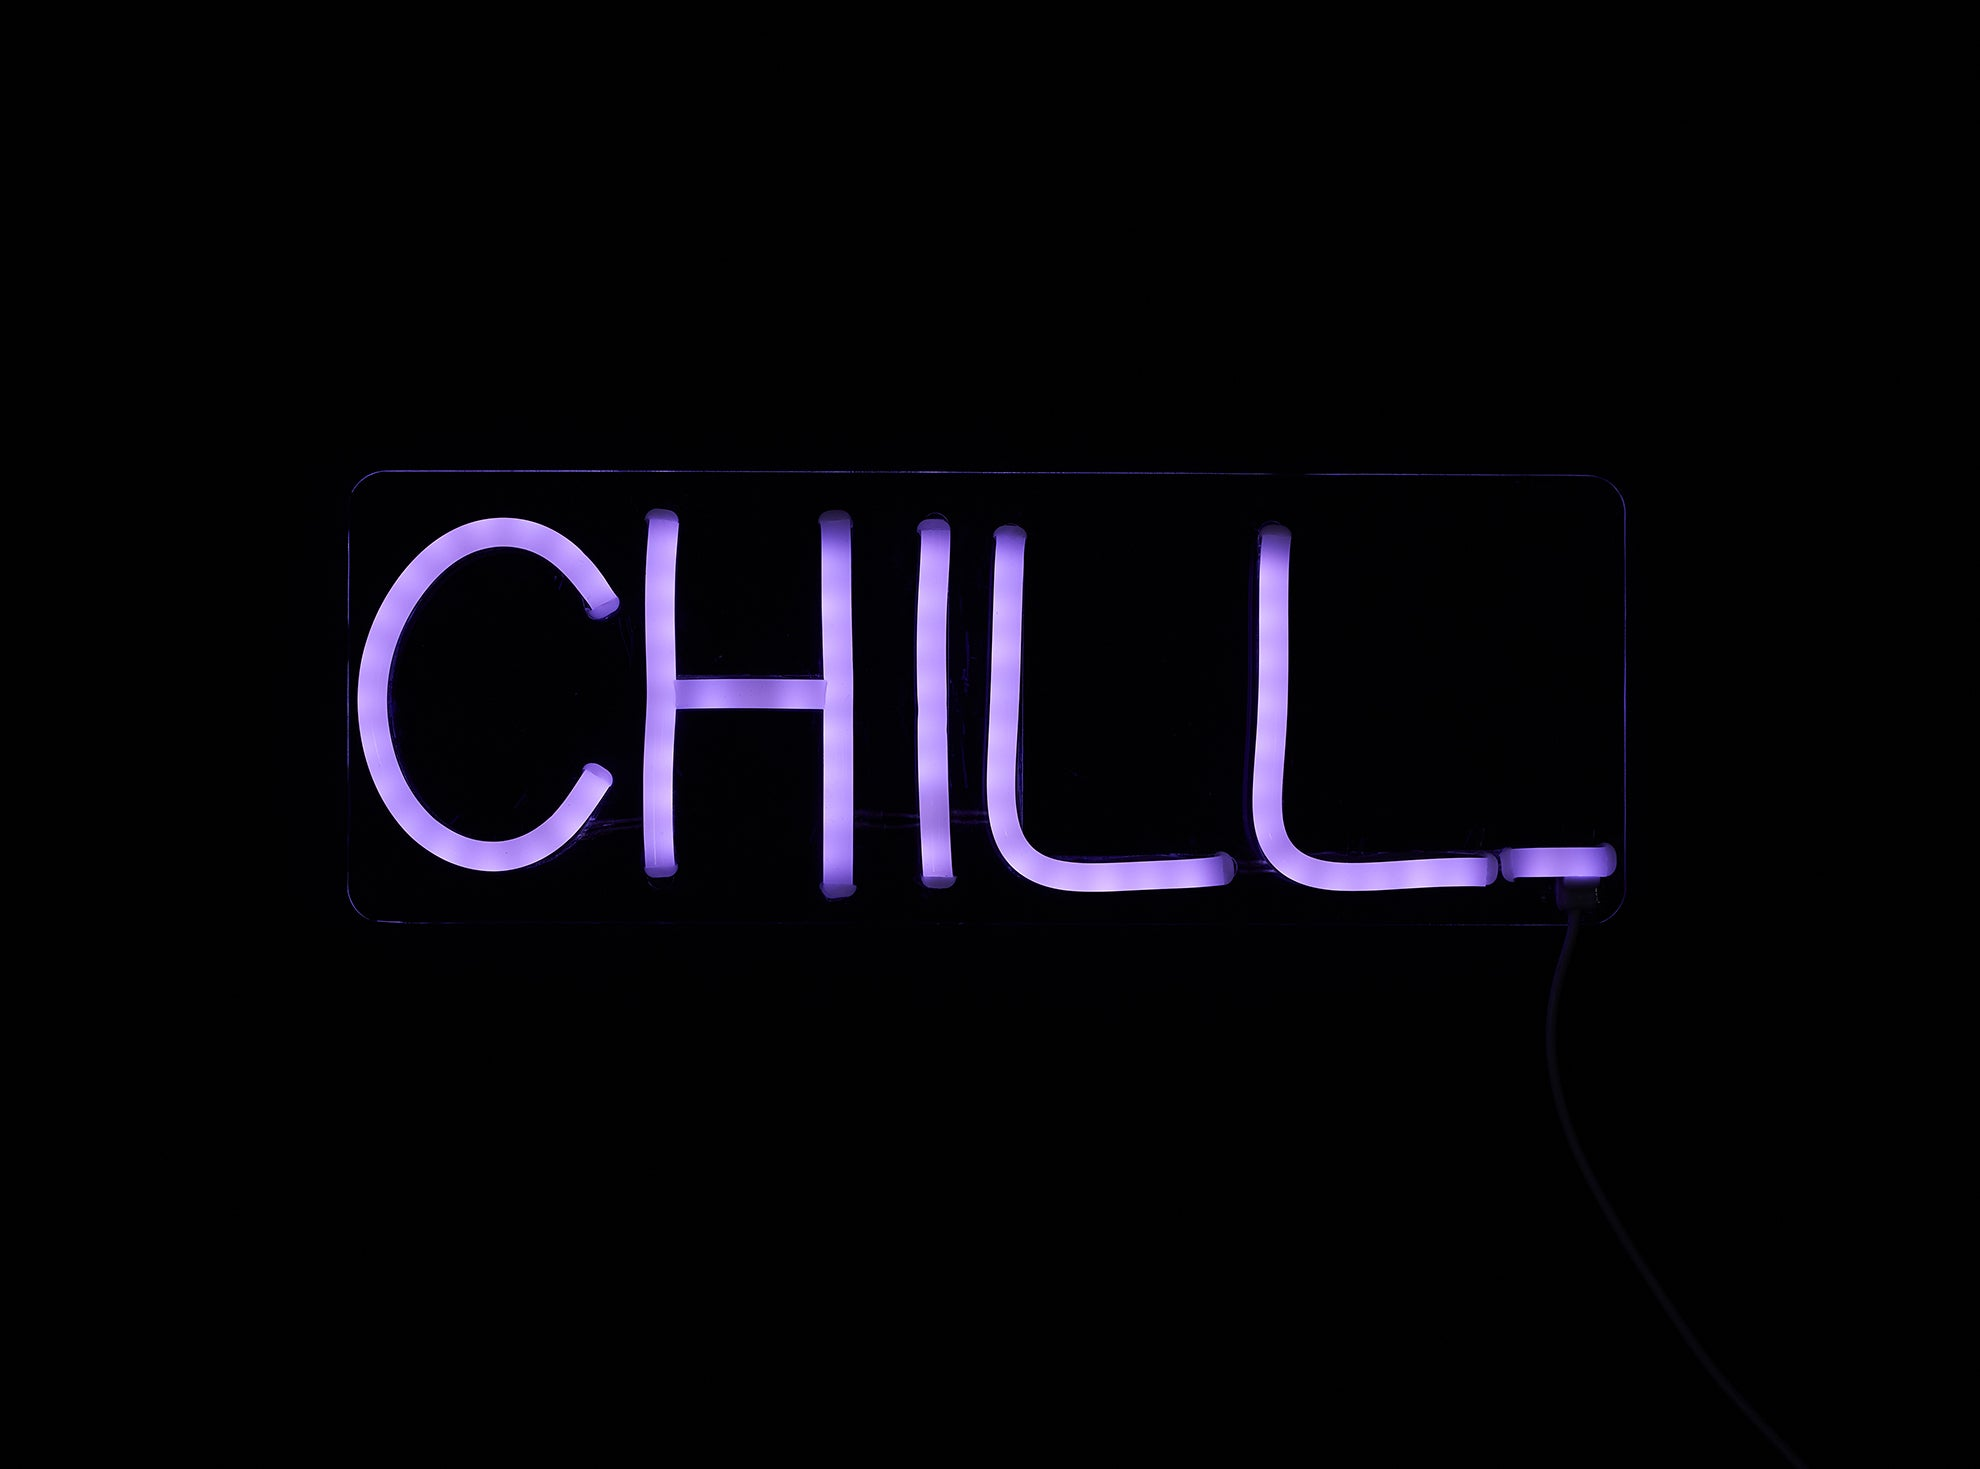 CHILL LED Neon Wall Sign - Cocus Pocus